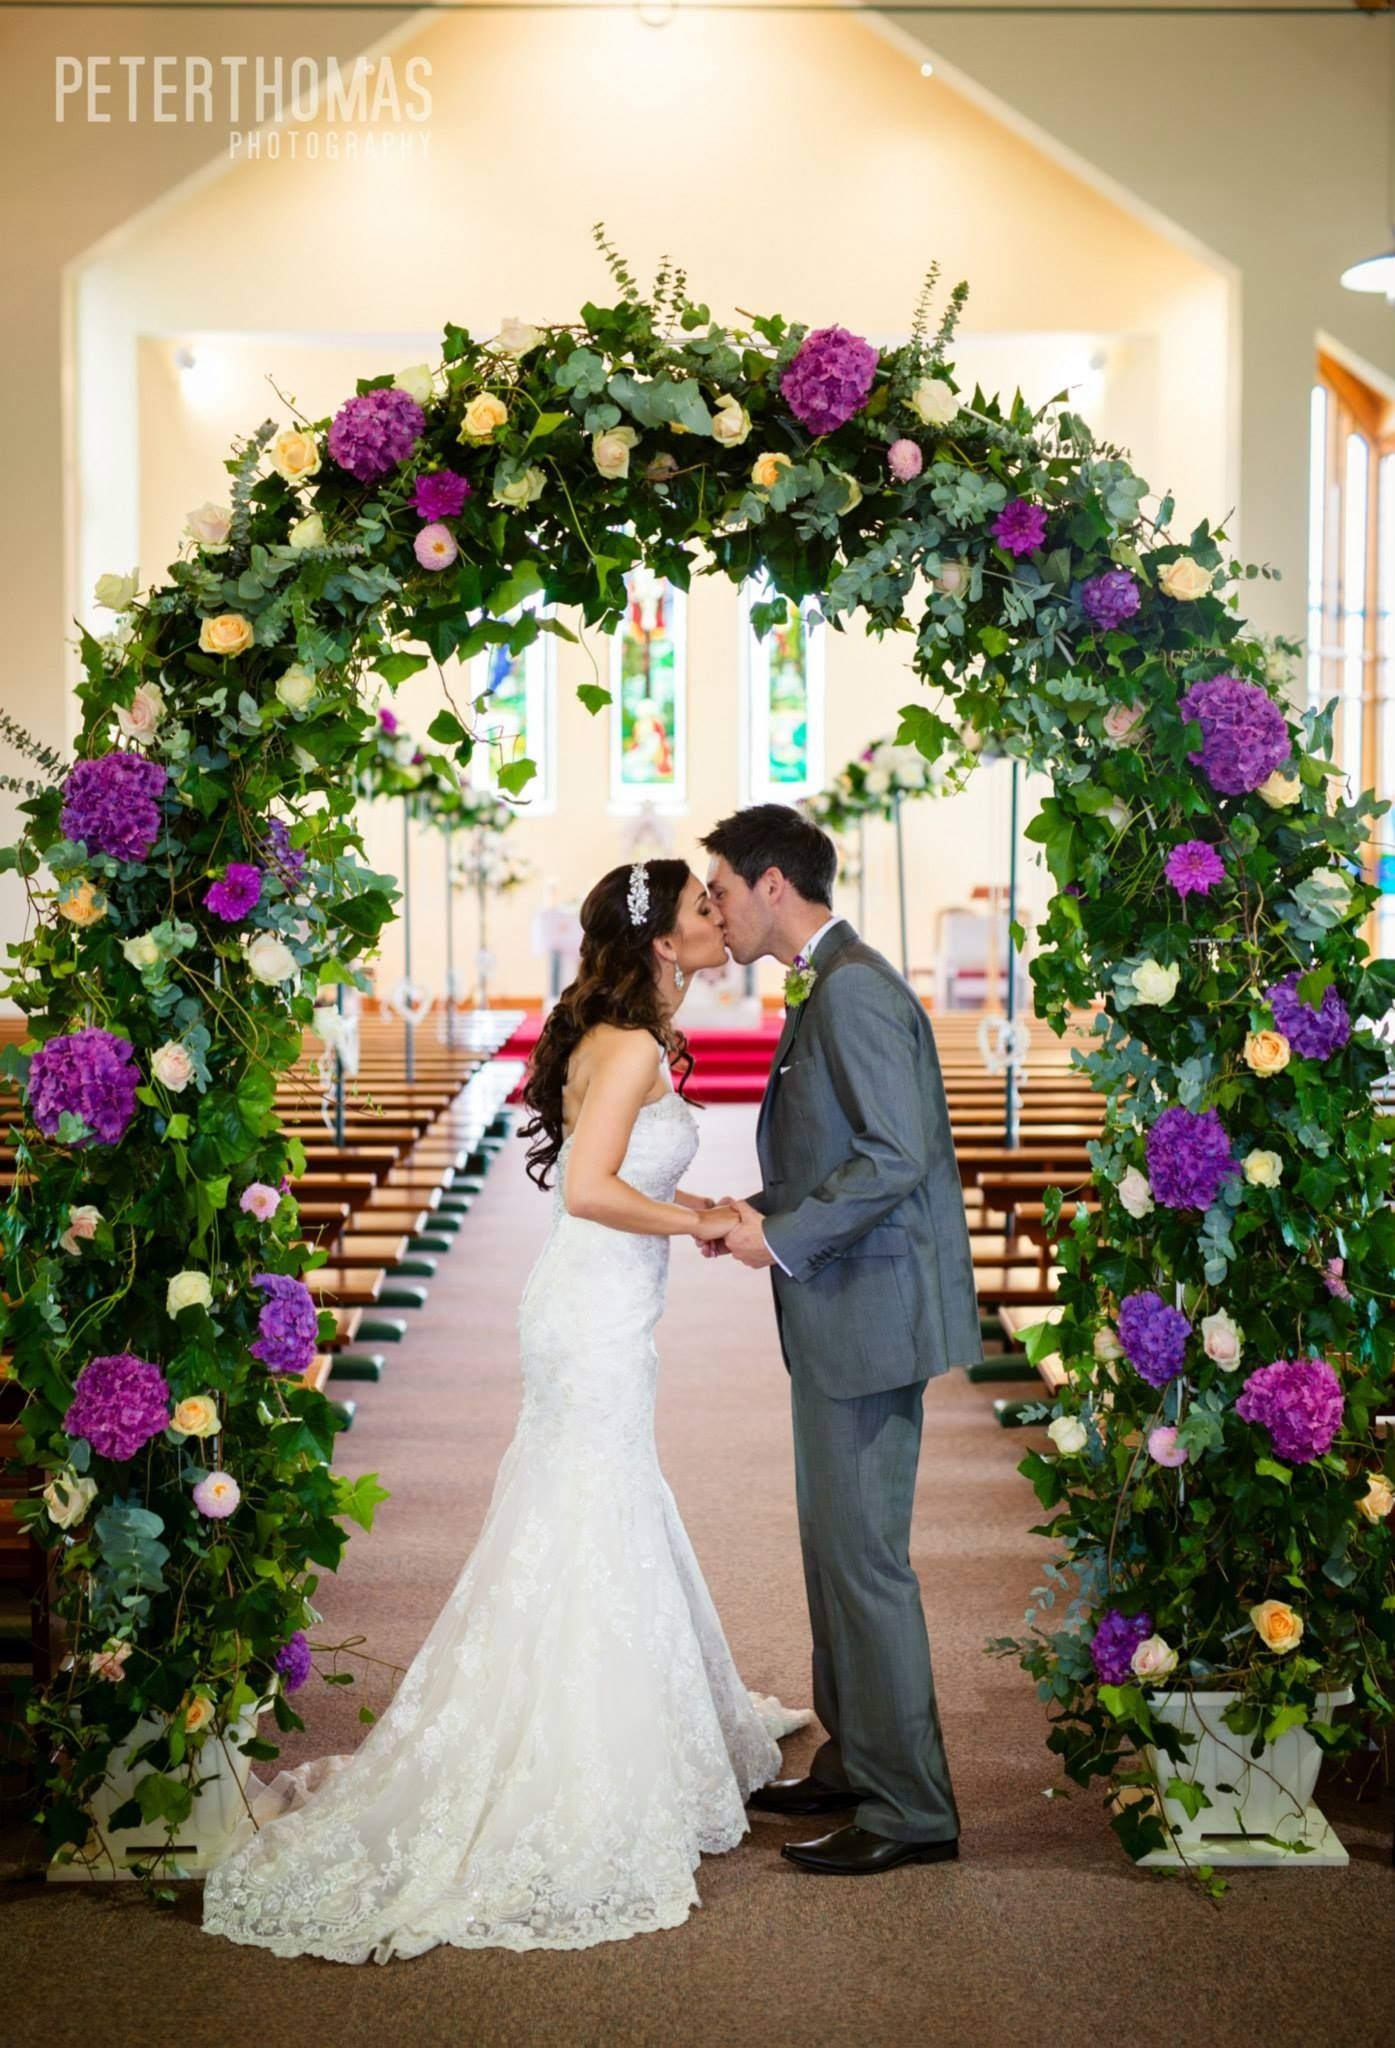 Arch with fresh Flowers and Foliage Wedding arrangements